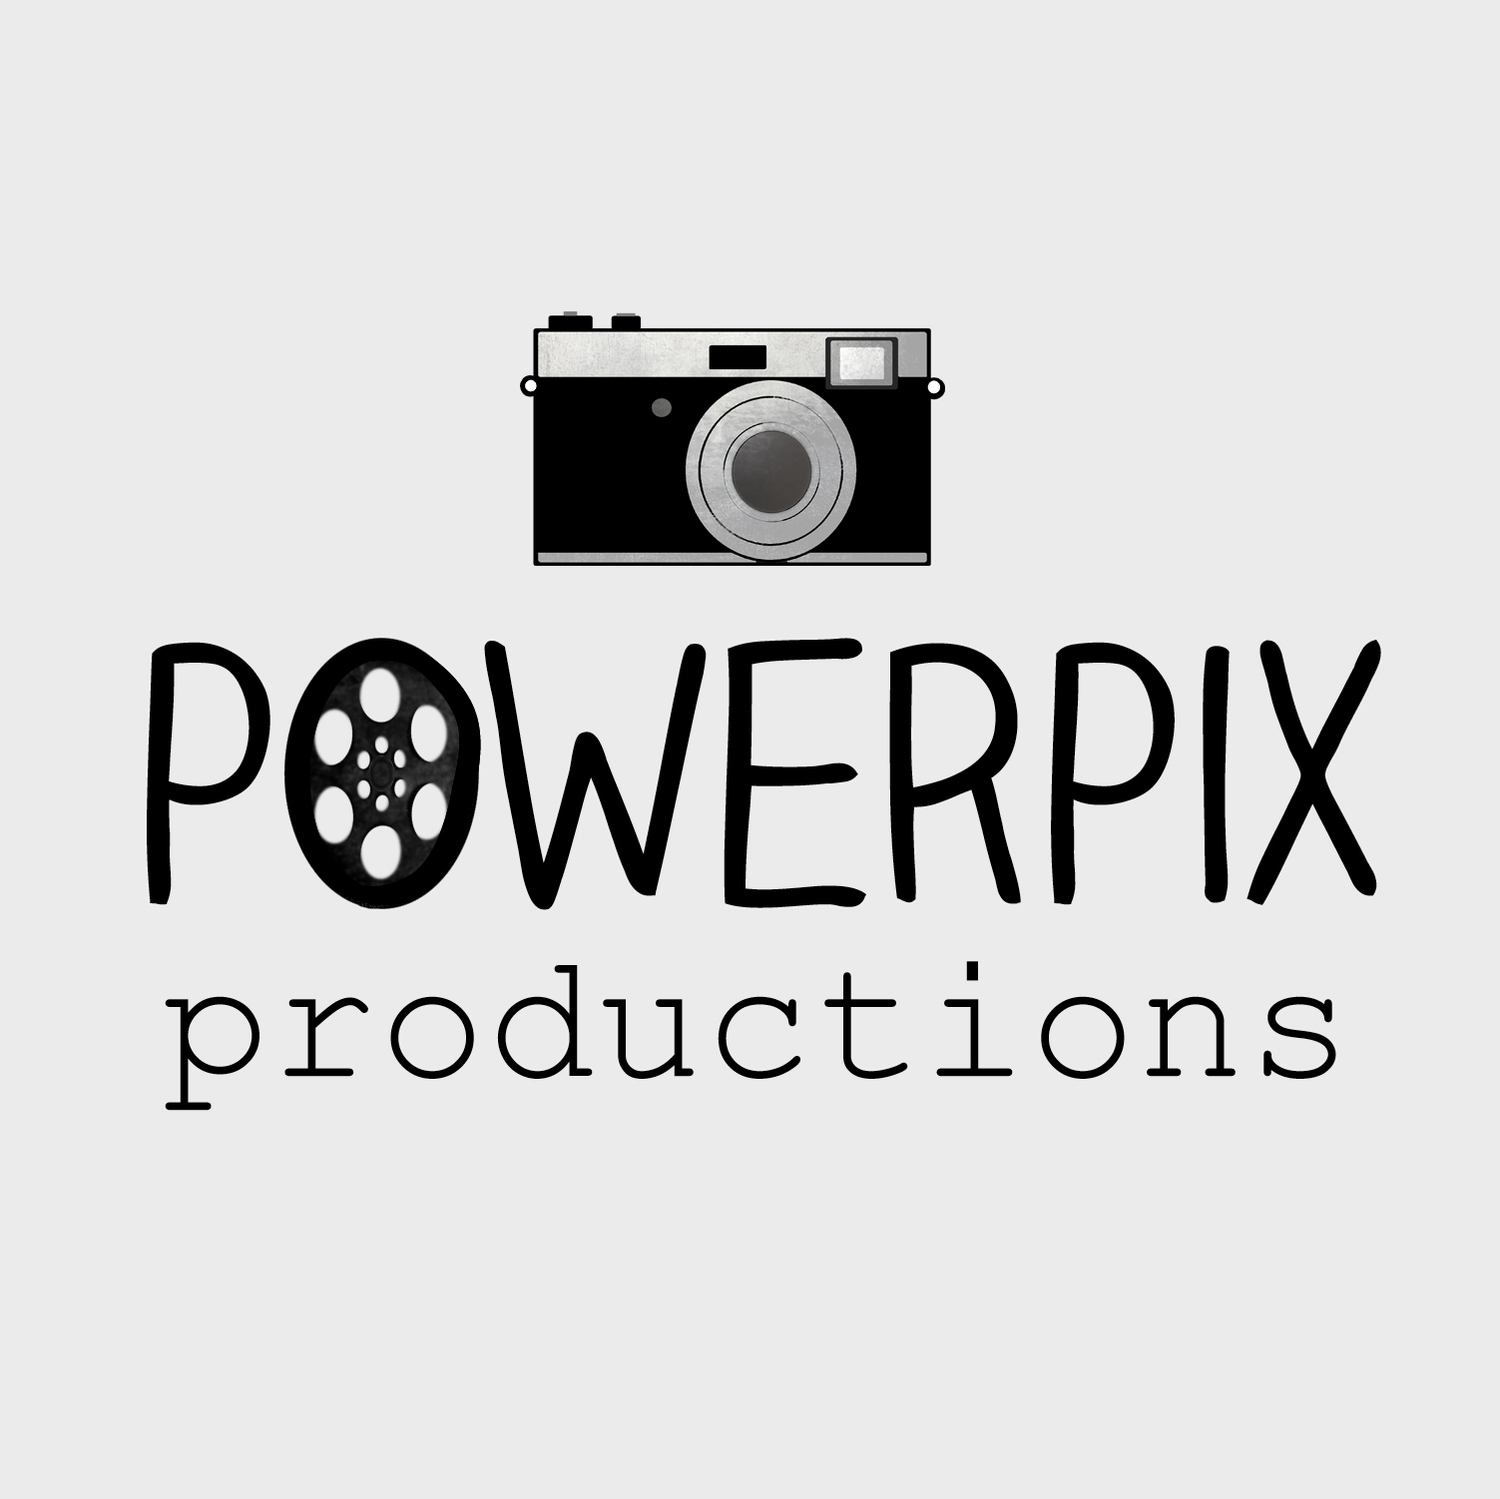 Powerpix productions